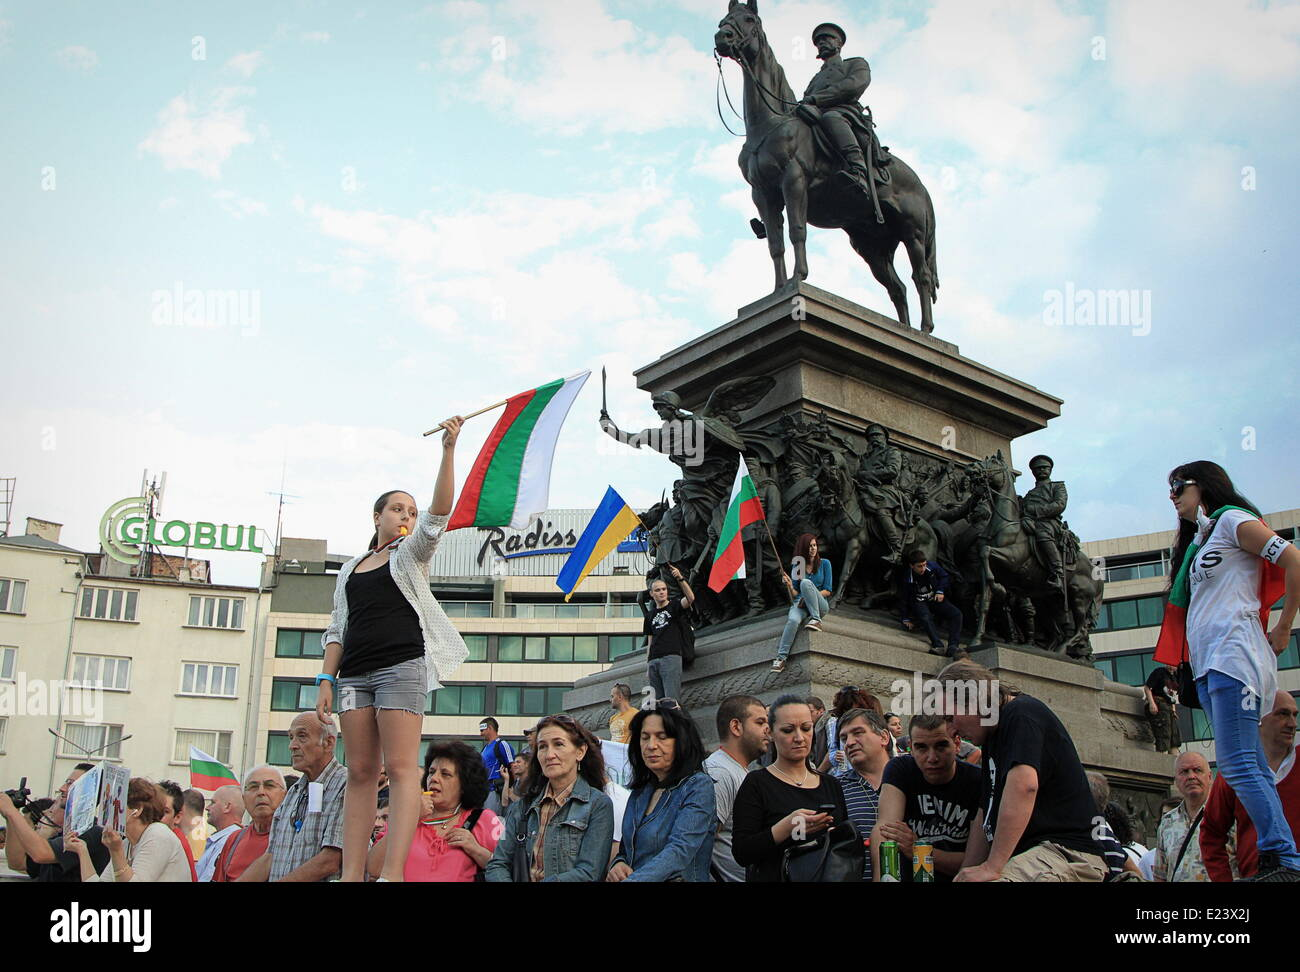 June 14, 2014 - Many posters and banners in support of Ukraine and against Russian imperialism, in Sofia, Bulgaria, - Stock Image